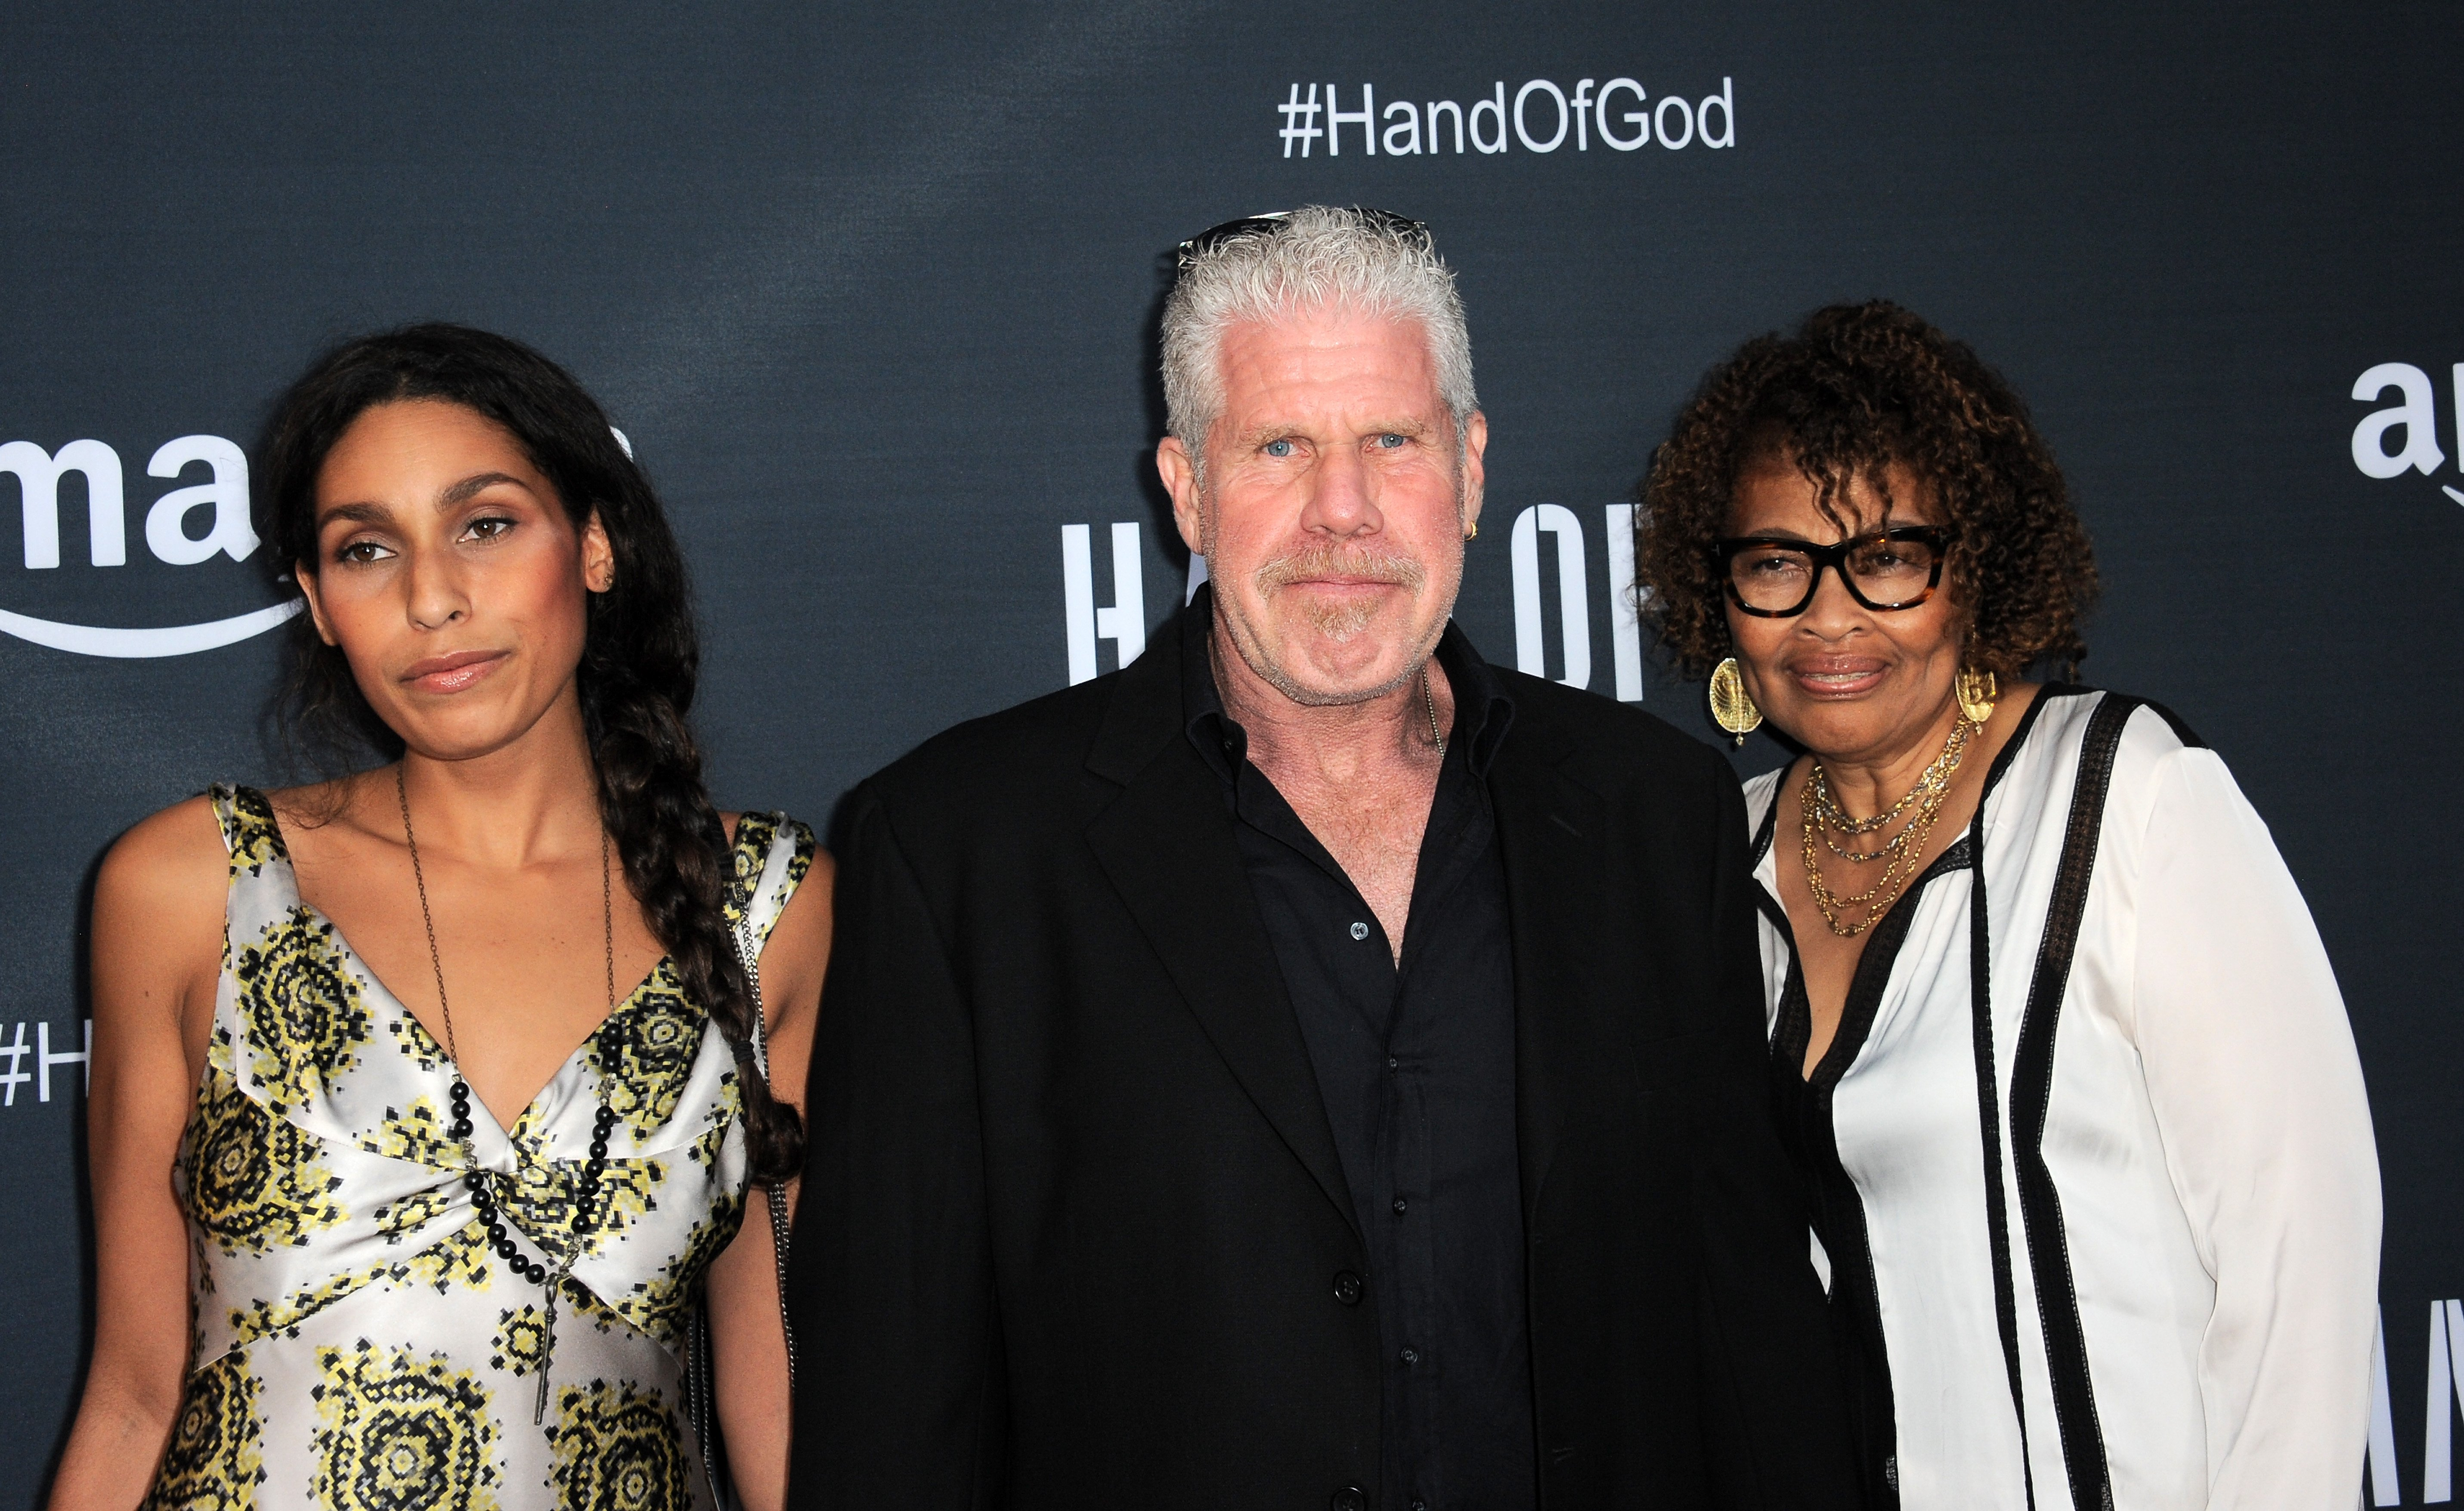 """Blake Perlman, Ron Perlman and Opal Stone arrive for the Premiere Of Amazon's Series """"Hand Of God.""""   Source: Getty Images"""